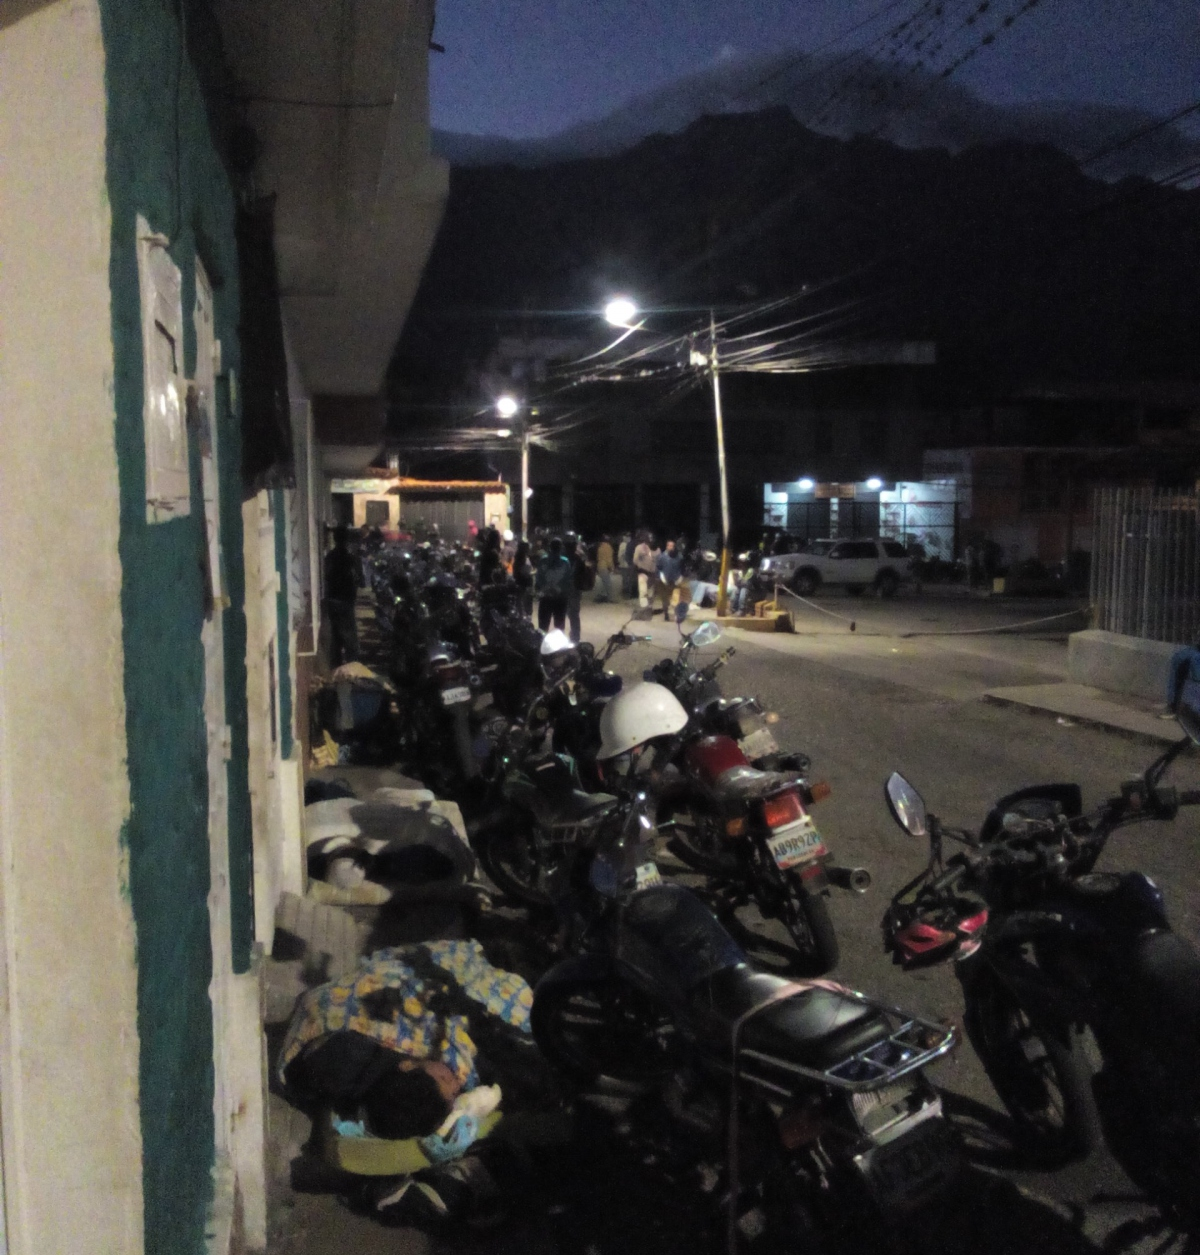 Motorbike users set up camp in La Hoyada sector of the city of Mérida, waiting for the tanker to arrive the following day. (Paul Dobson)